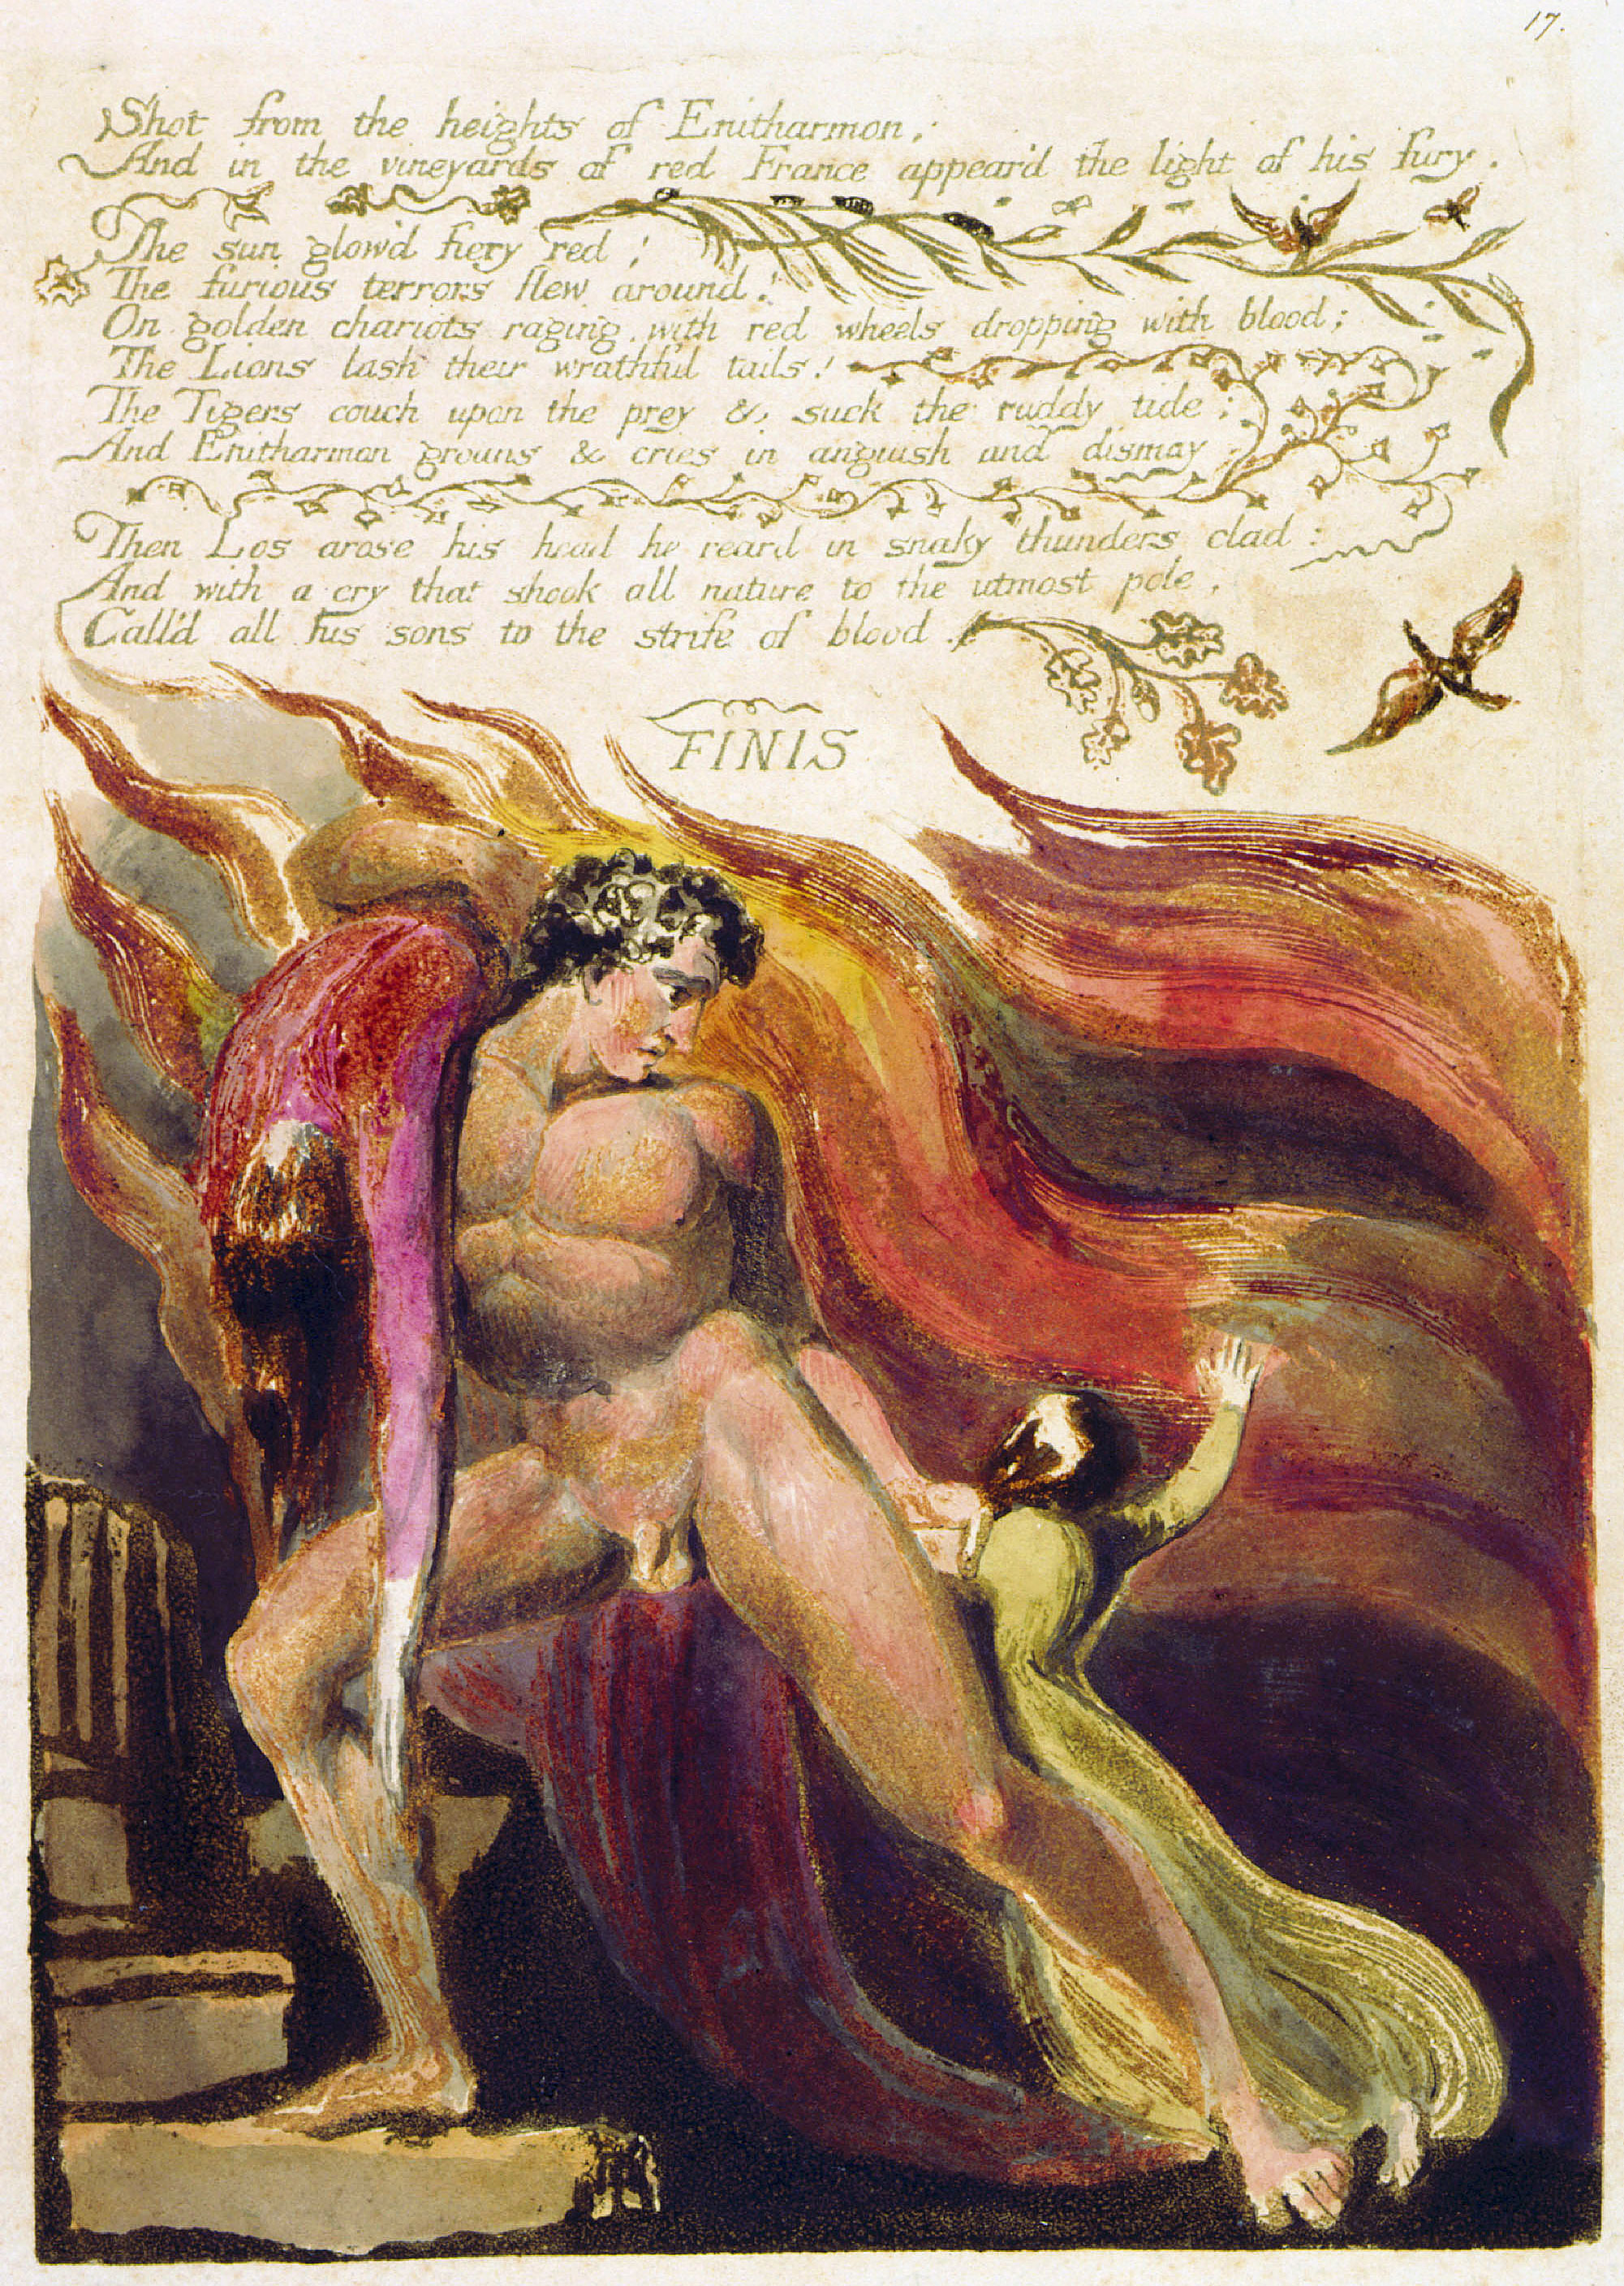 17. 	Shot from the heights of Enitharmon; 	And in the vineyards of red France appear'd the light of his fury. 	The sun glow'd fiery red; 	The furious terrors flew around! 	On golden chariots raging, with red wheels dropping with blood; 	The Lions lash their wrathful tails! 	The Tigers couch upon the prey & suck the ruddy tide; 	And Enitharmon groans & cries in anguish and dismay 	Then Los arose his head he reard in snaky thunders clad: 	And with a cry that shook all nature to the utmost pole, 	Call'd all his sons to the strife of blood. 	FINIS